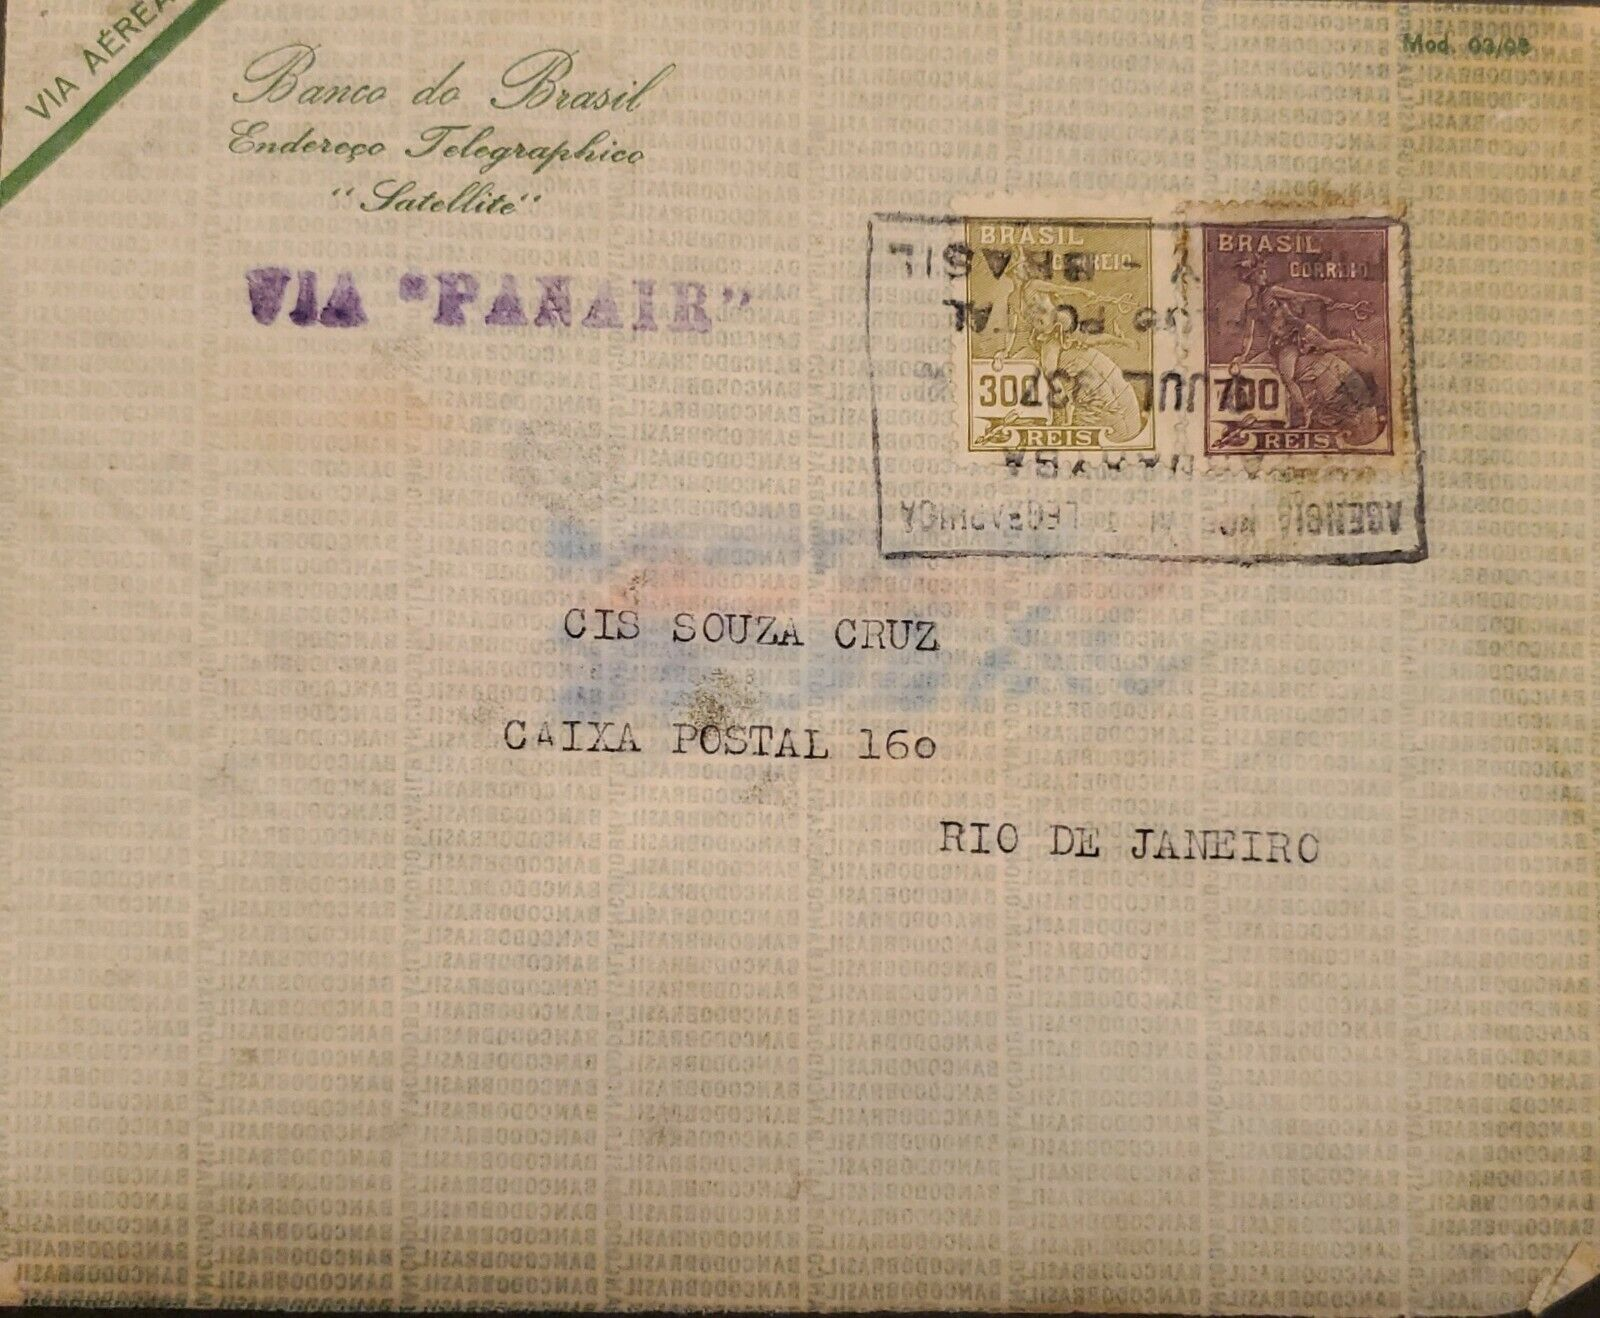 A 1937, BRAZIL, PANAIR, SHIPPED TO RIO DE JANEIRO, AIRMAIL, COMMERCE STAMPS - $25.00